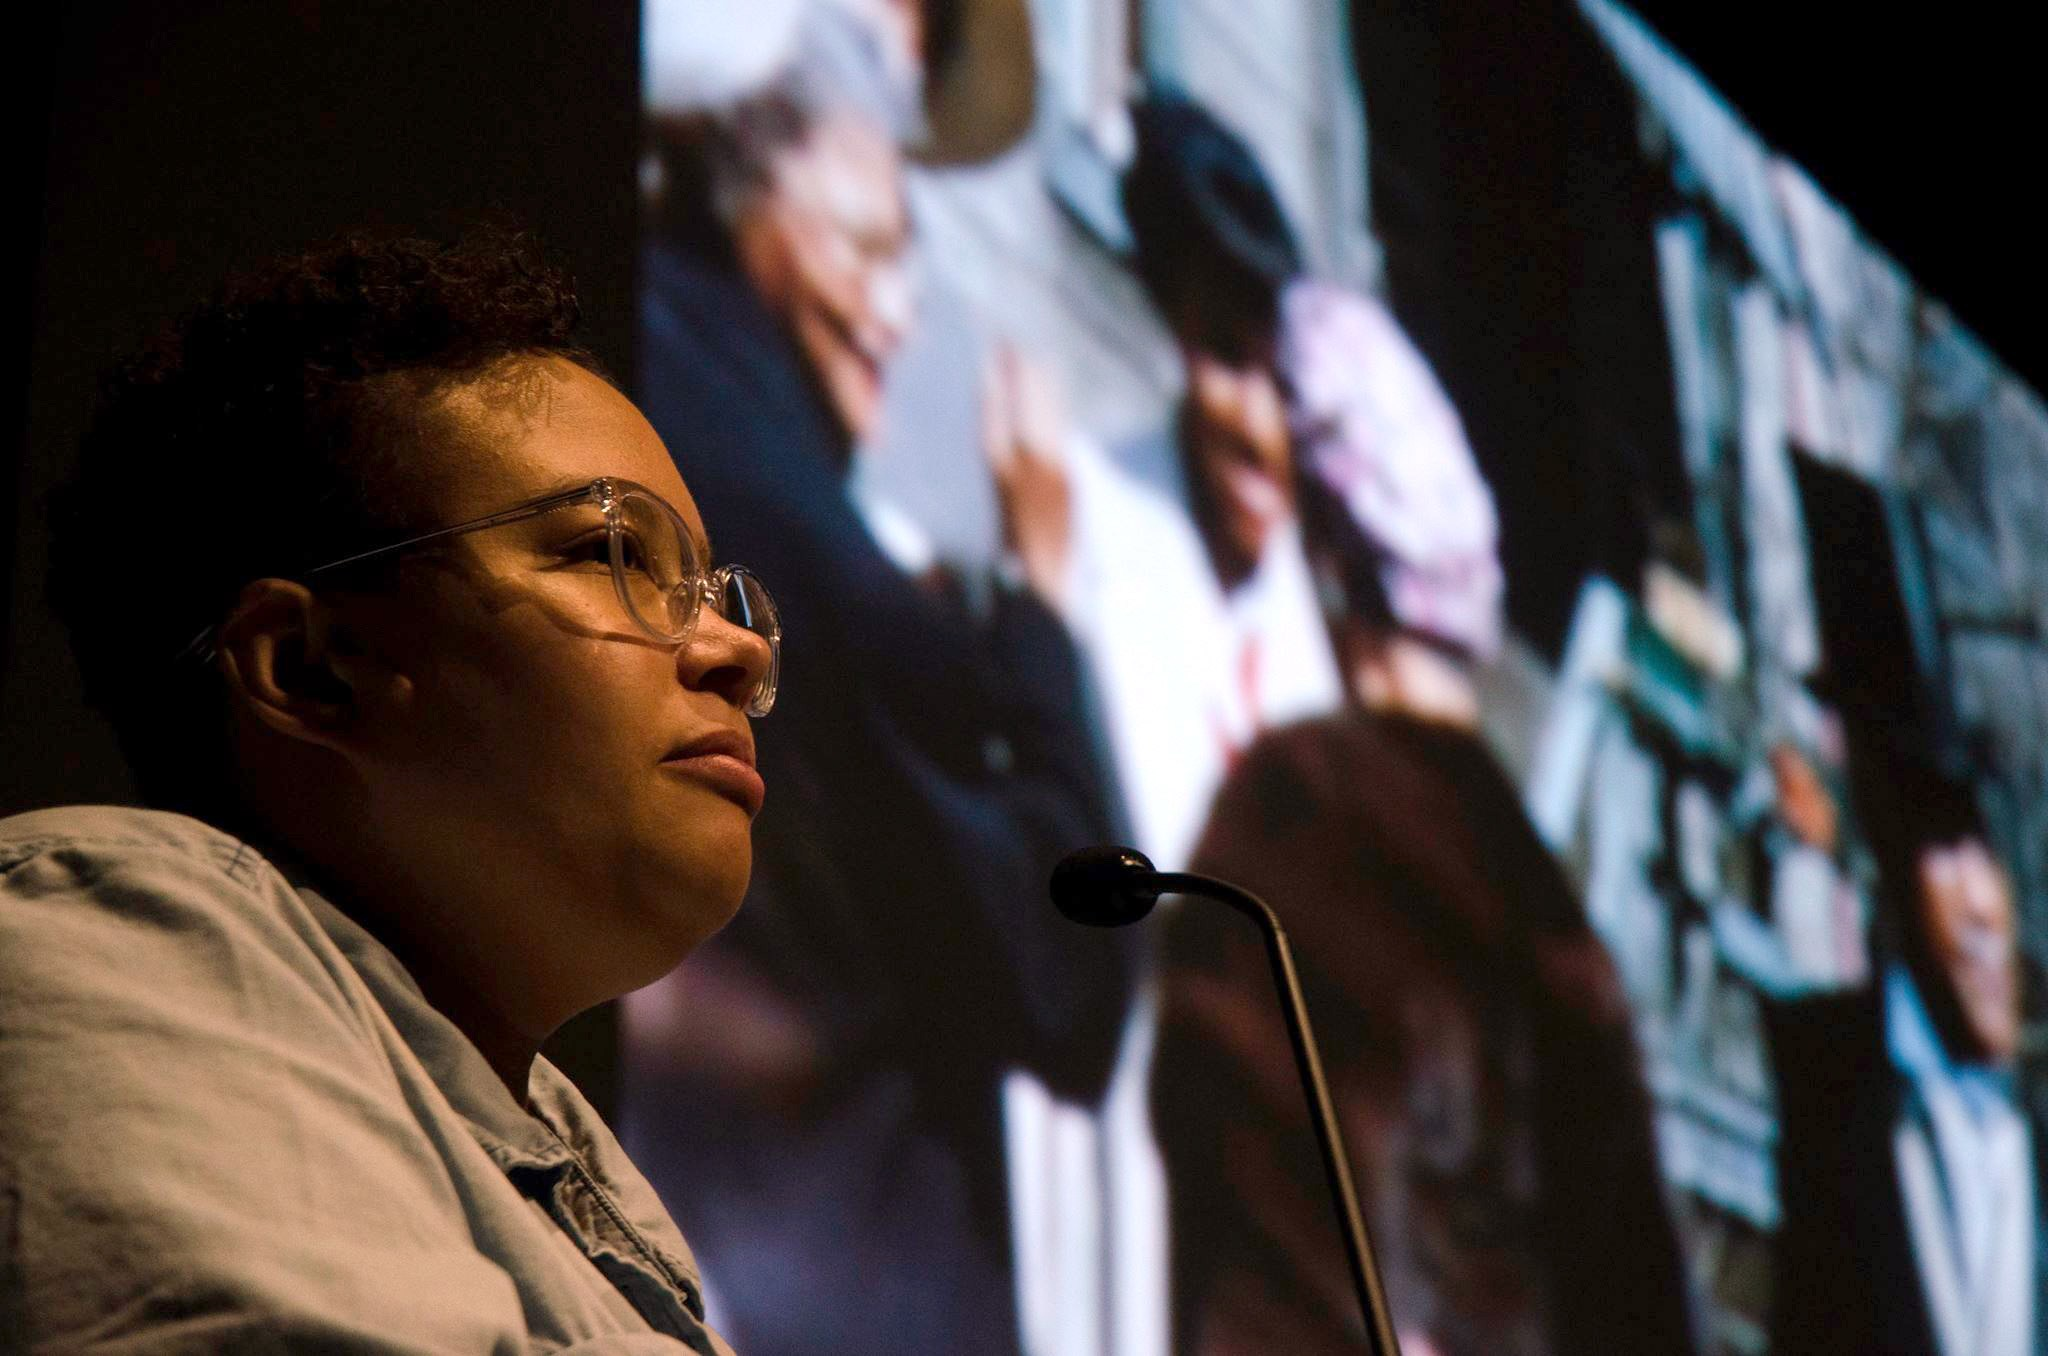 Image: Close-up shot of Candace Ming, who wears a light denim shirt and clear-framed glasses. Candace looks beyond the camera as she shares film selections from the SSHMP archive at the Logan Center Five Year Bash on October 7, 2017. Photo by Martin Awano, Film still from the Jean Patton Collection, courtesy of the South Side Home Movie Project.